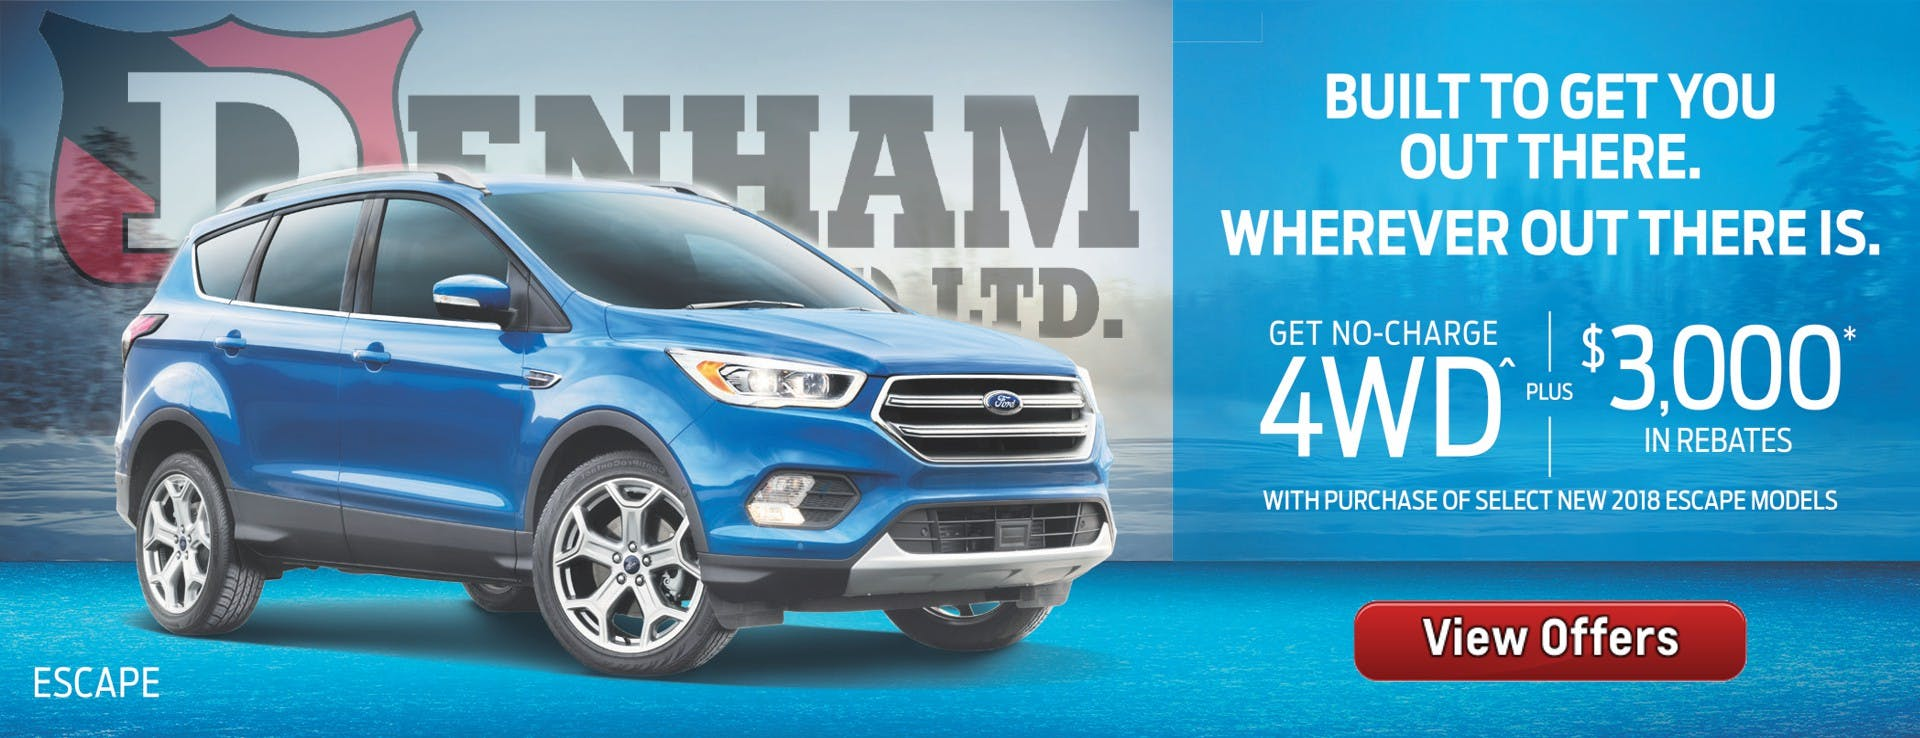 Denham Ford Bc Ltd New Pre Owned Cars Trucks Suvs Lincoln Navigator Fuel Filter Location Prev